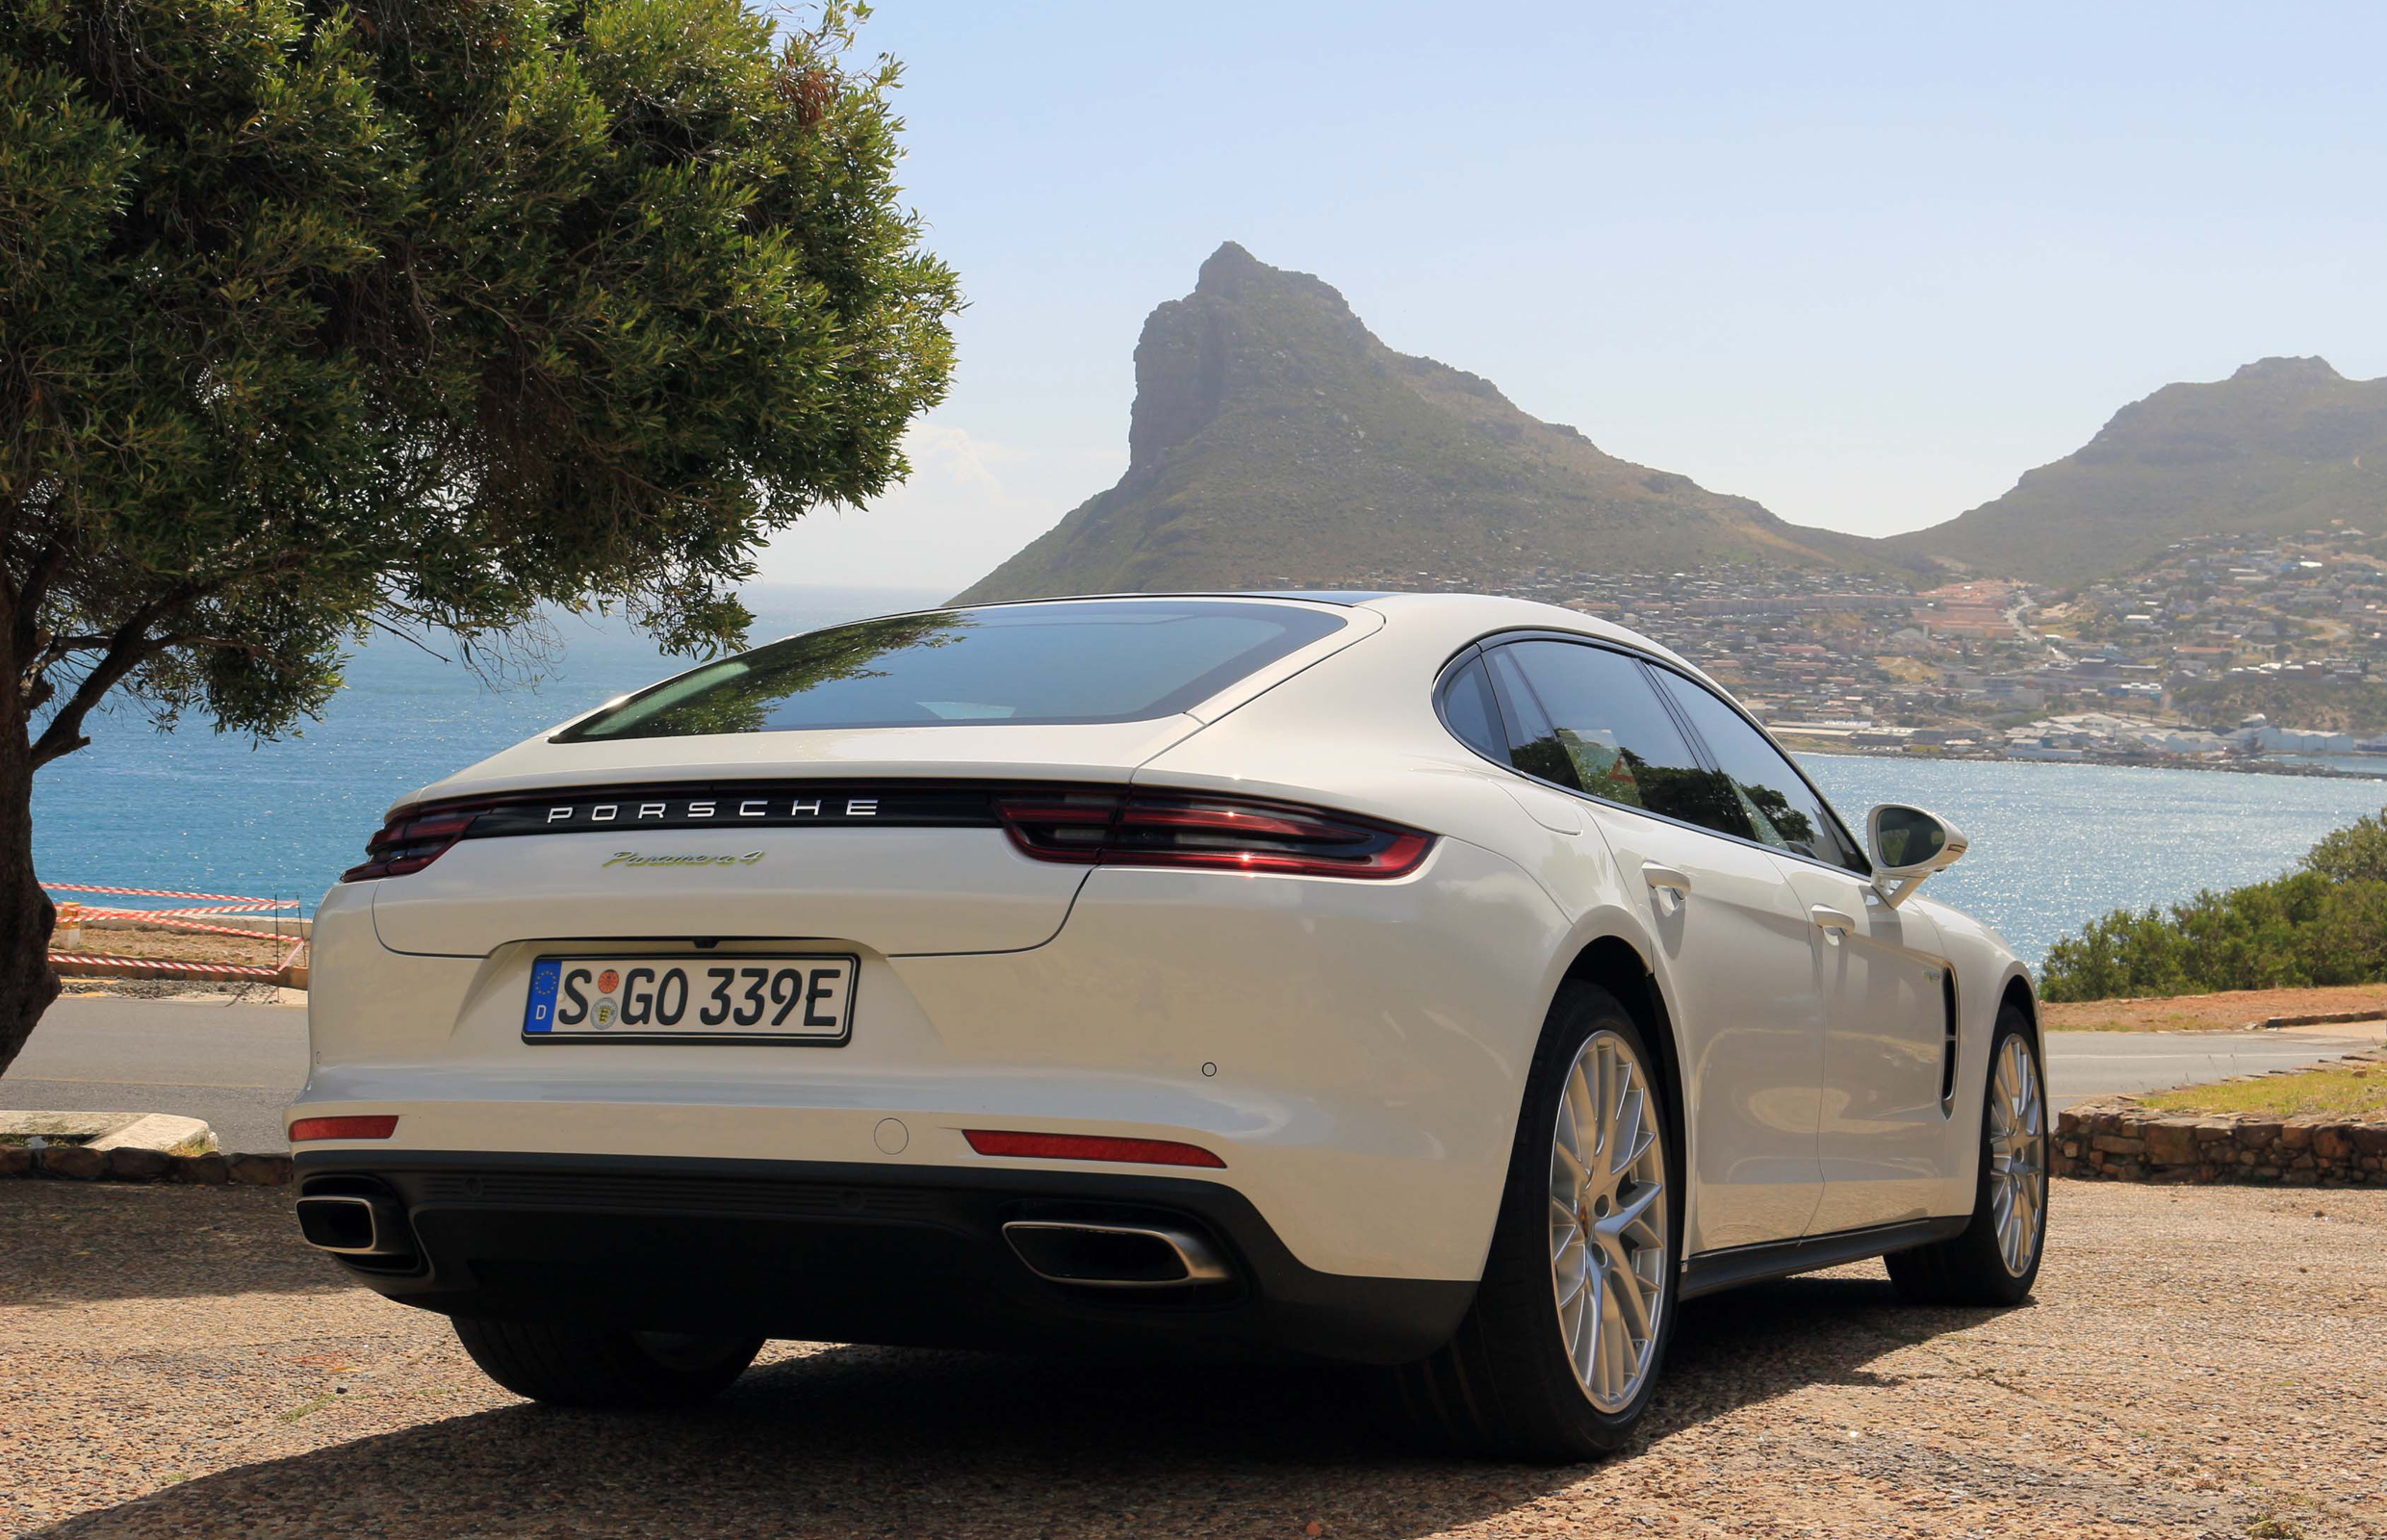 2018 Porsche Panamera 4 E Hybrid Exterior Rear And Side (View 9 of 10)